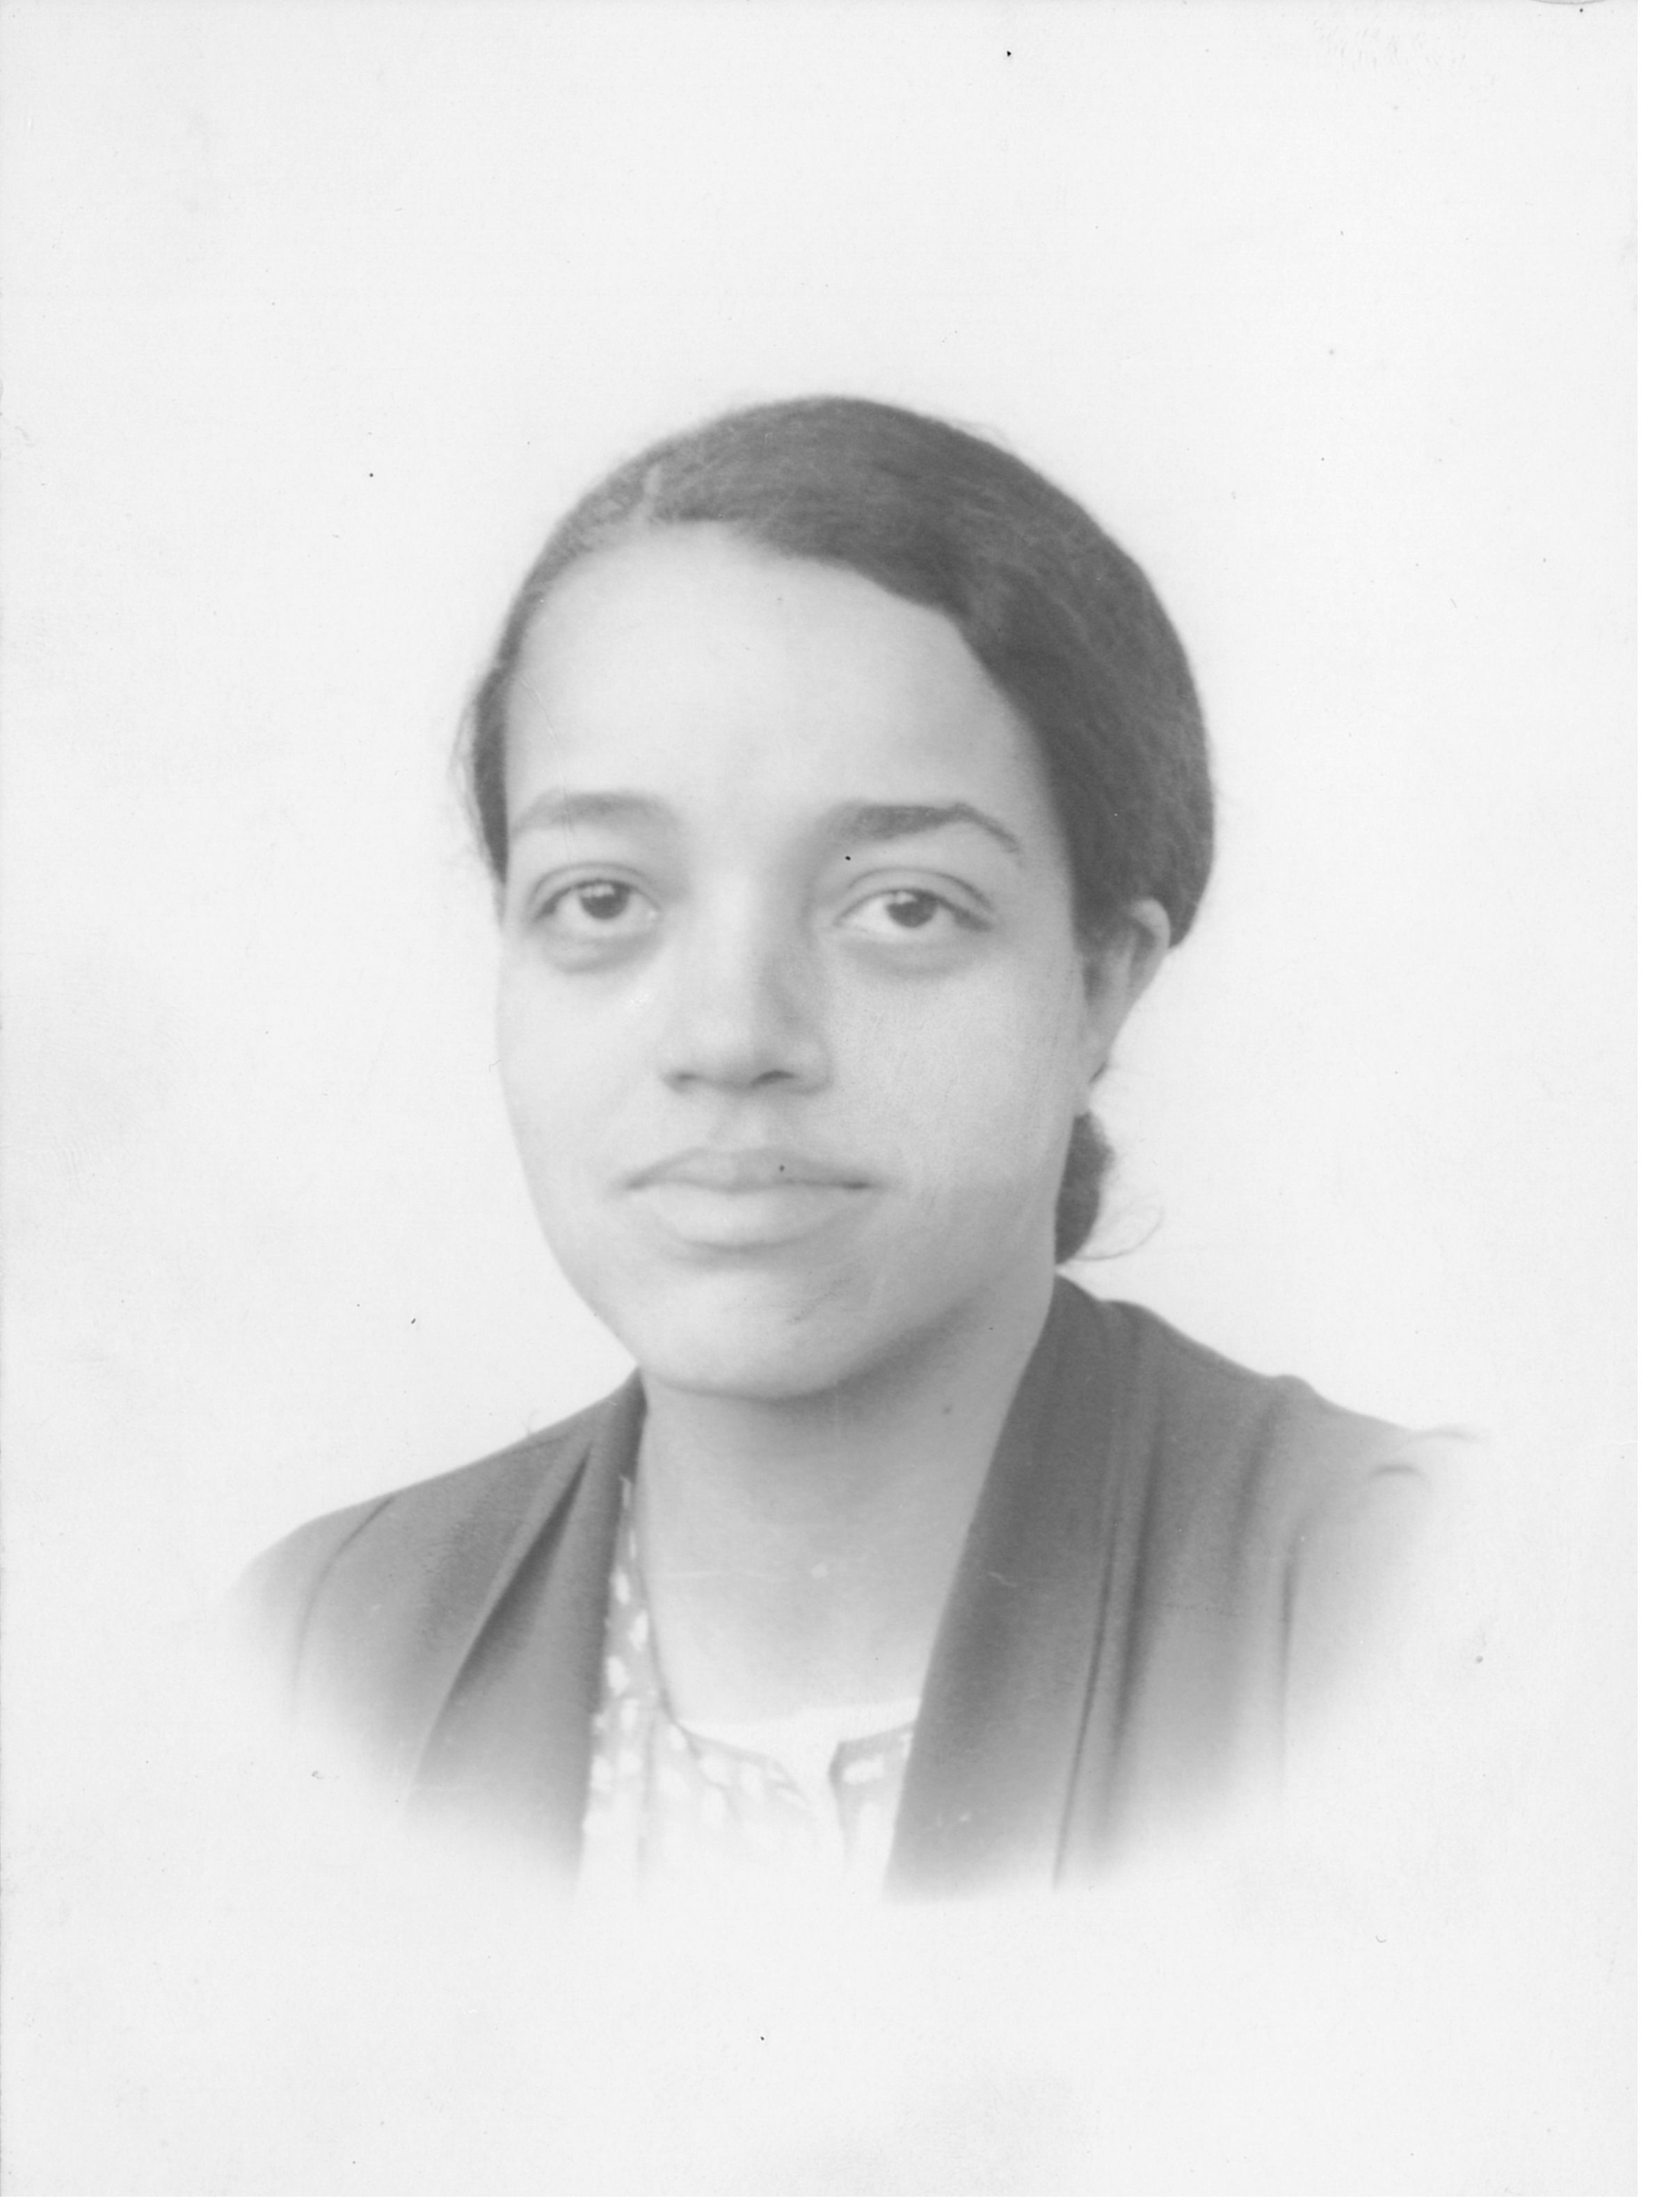 Dorothy Vaughan in her twenties. Photograph courtesy of the Family of  Dorothy J. Vaughan